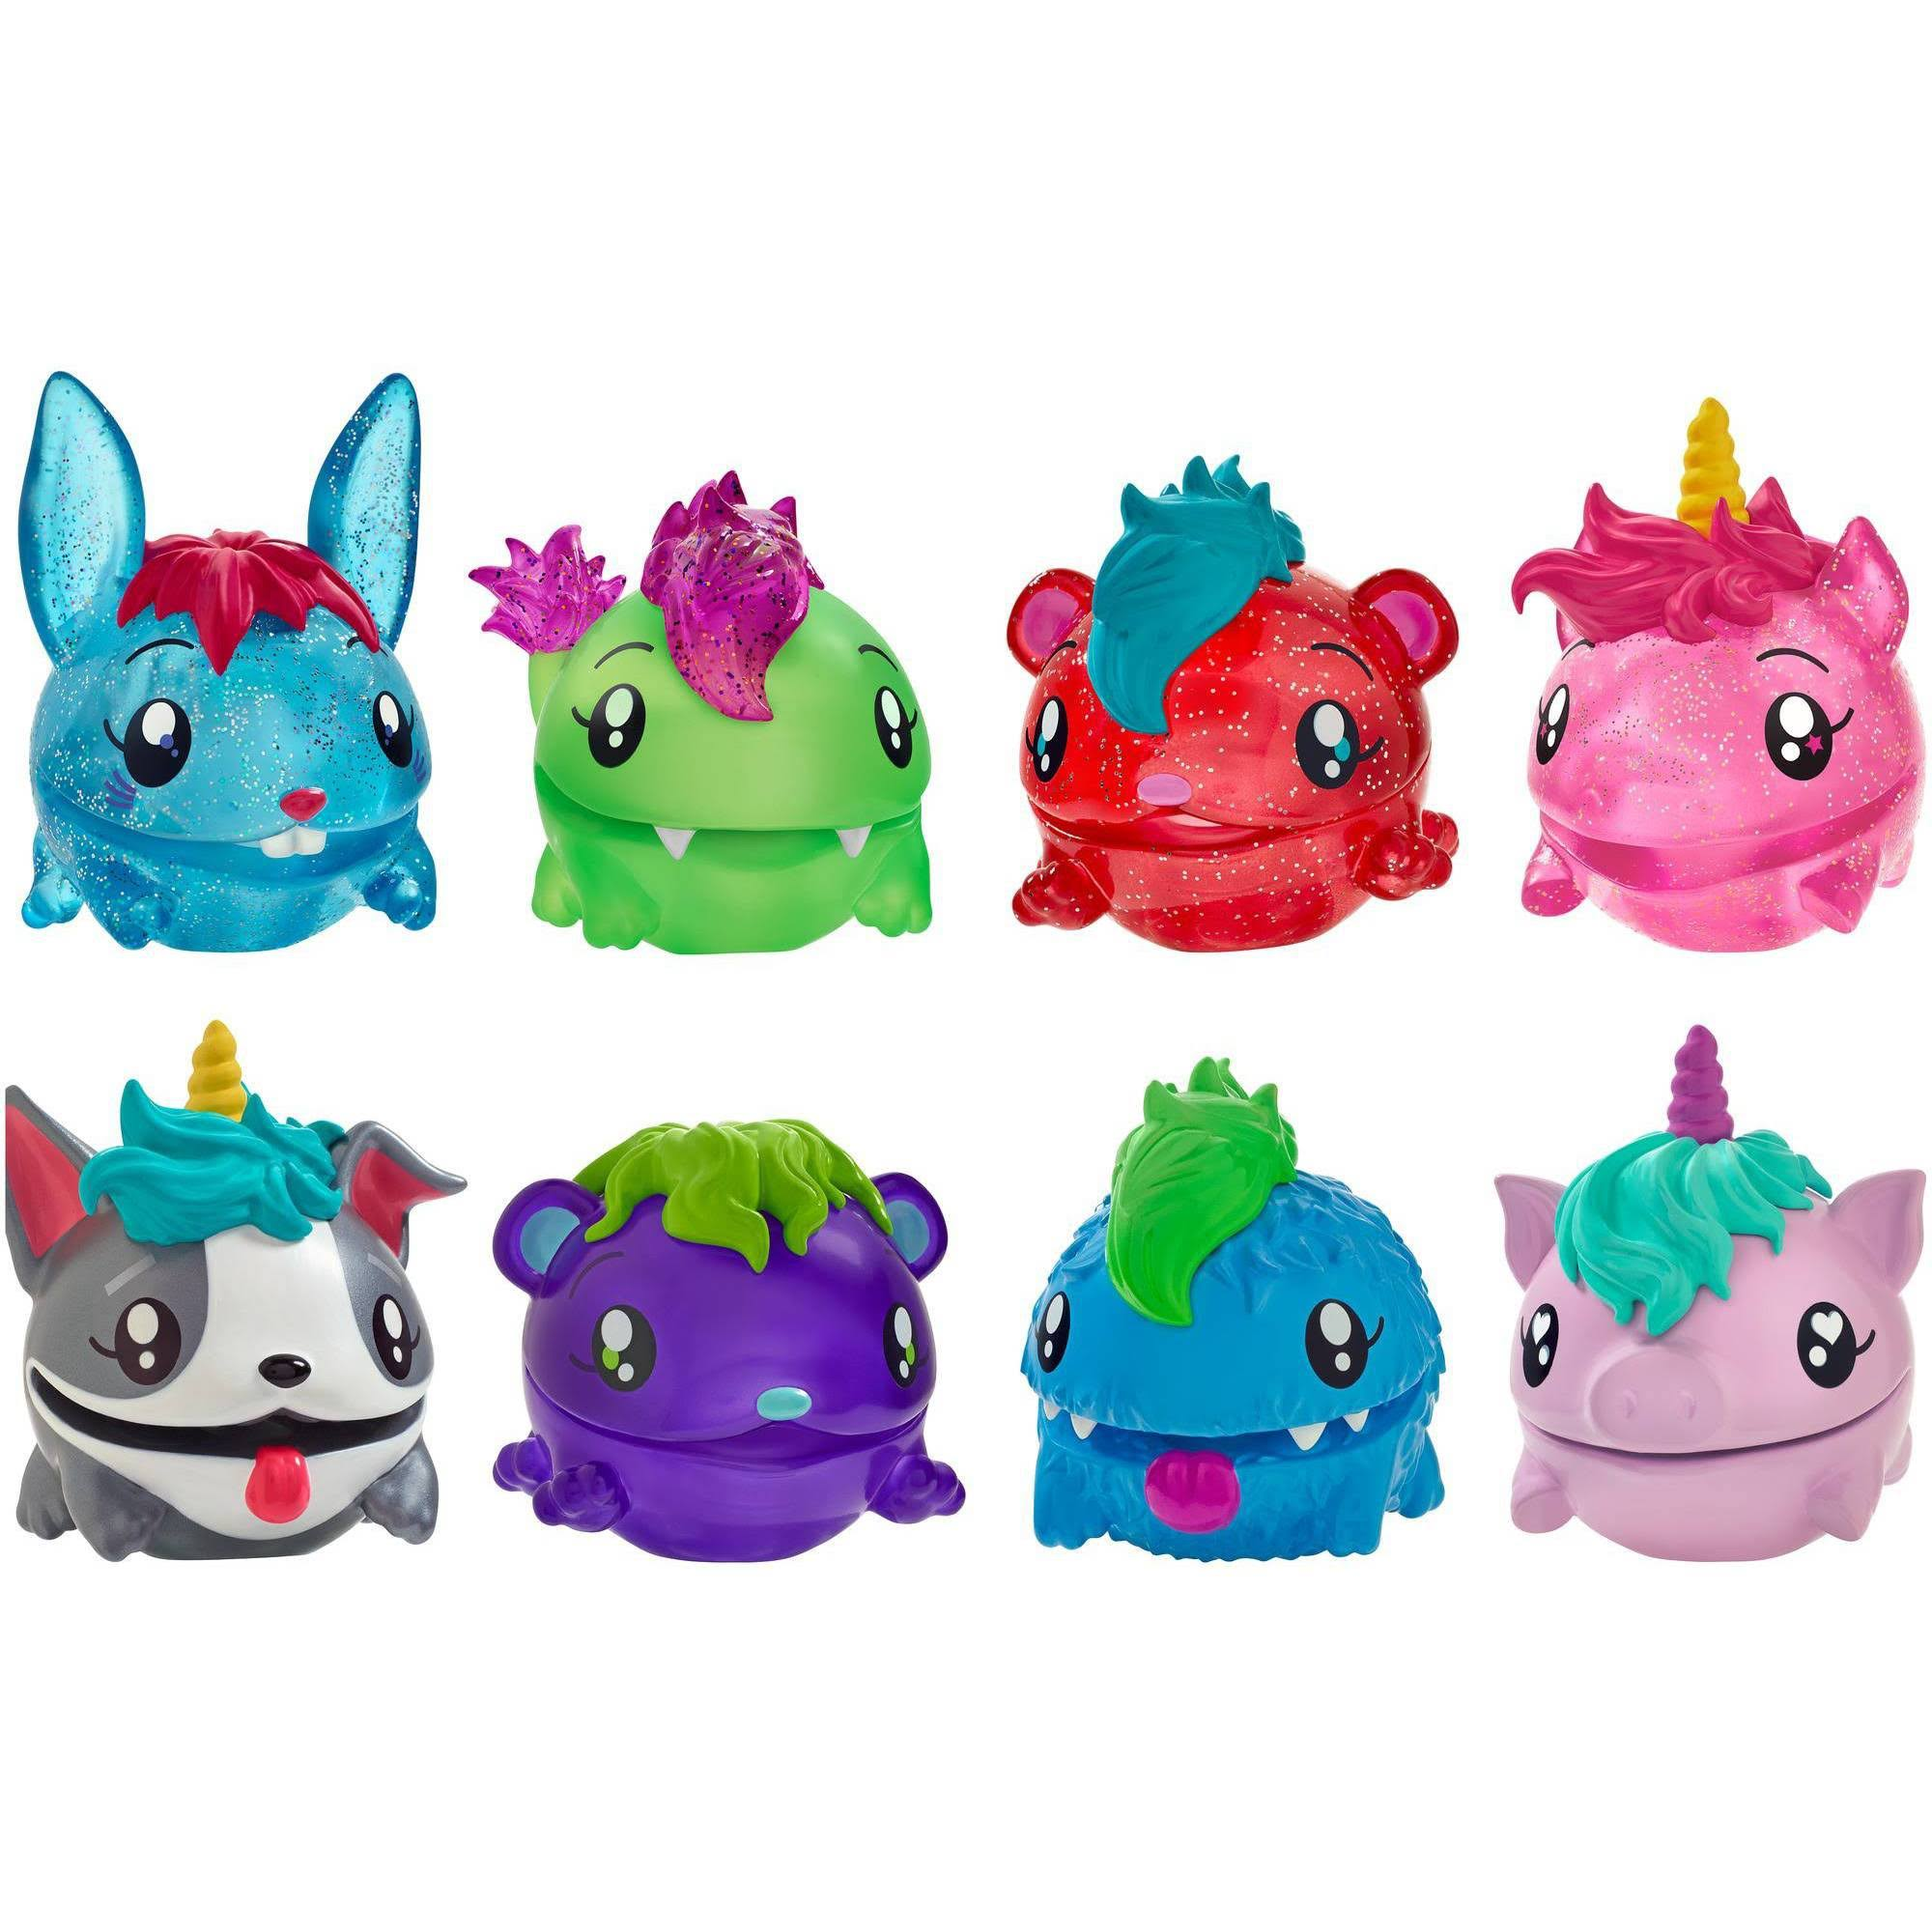 Pooparoos Gold Toilet Surpriseroos Figure, Multicolor (Styles May Vary)